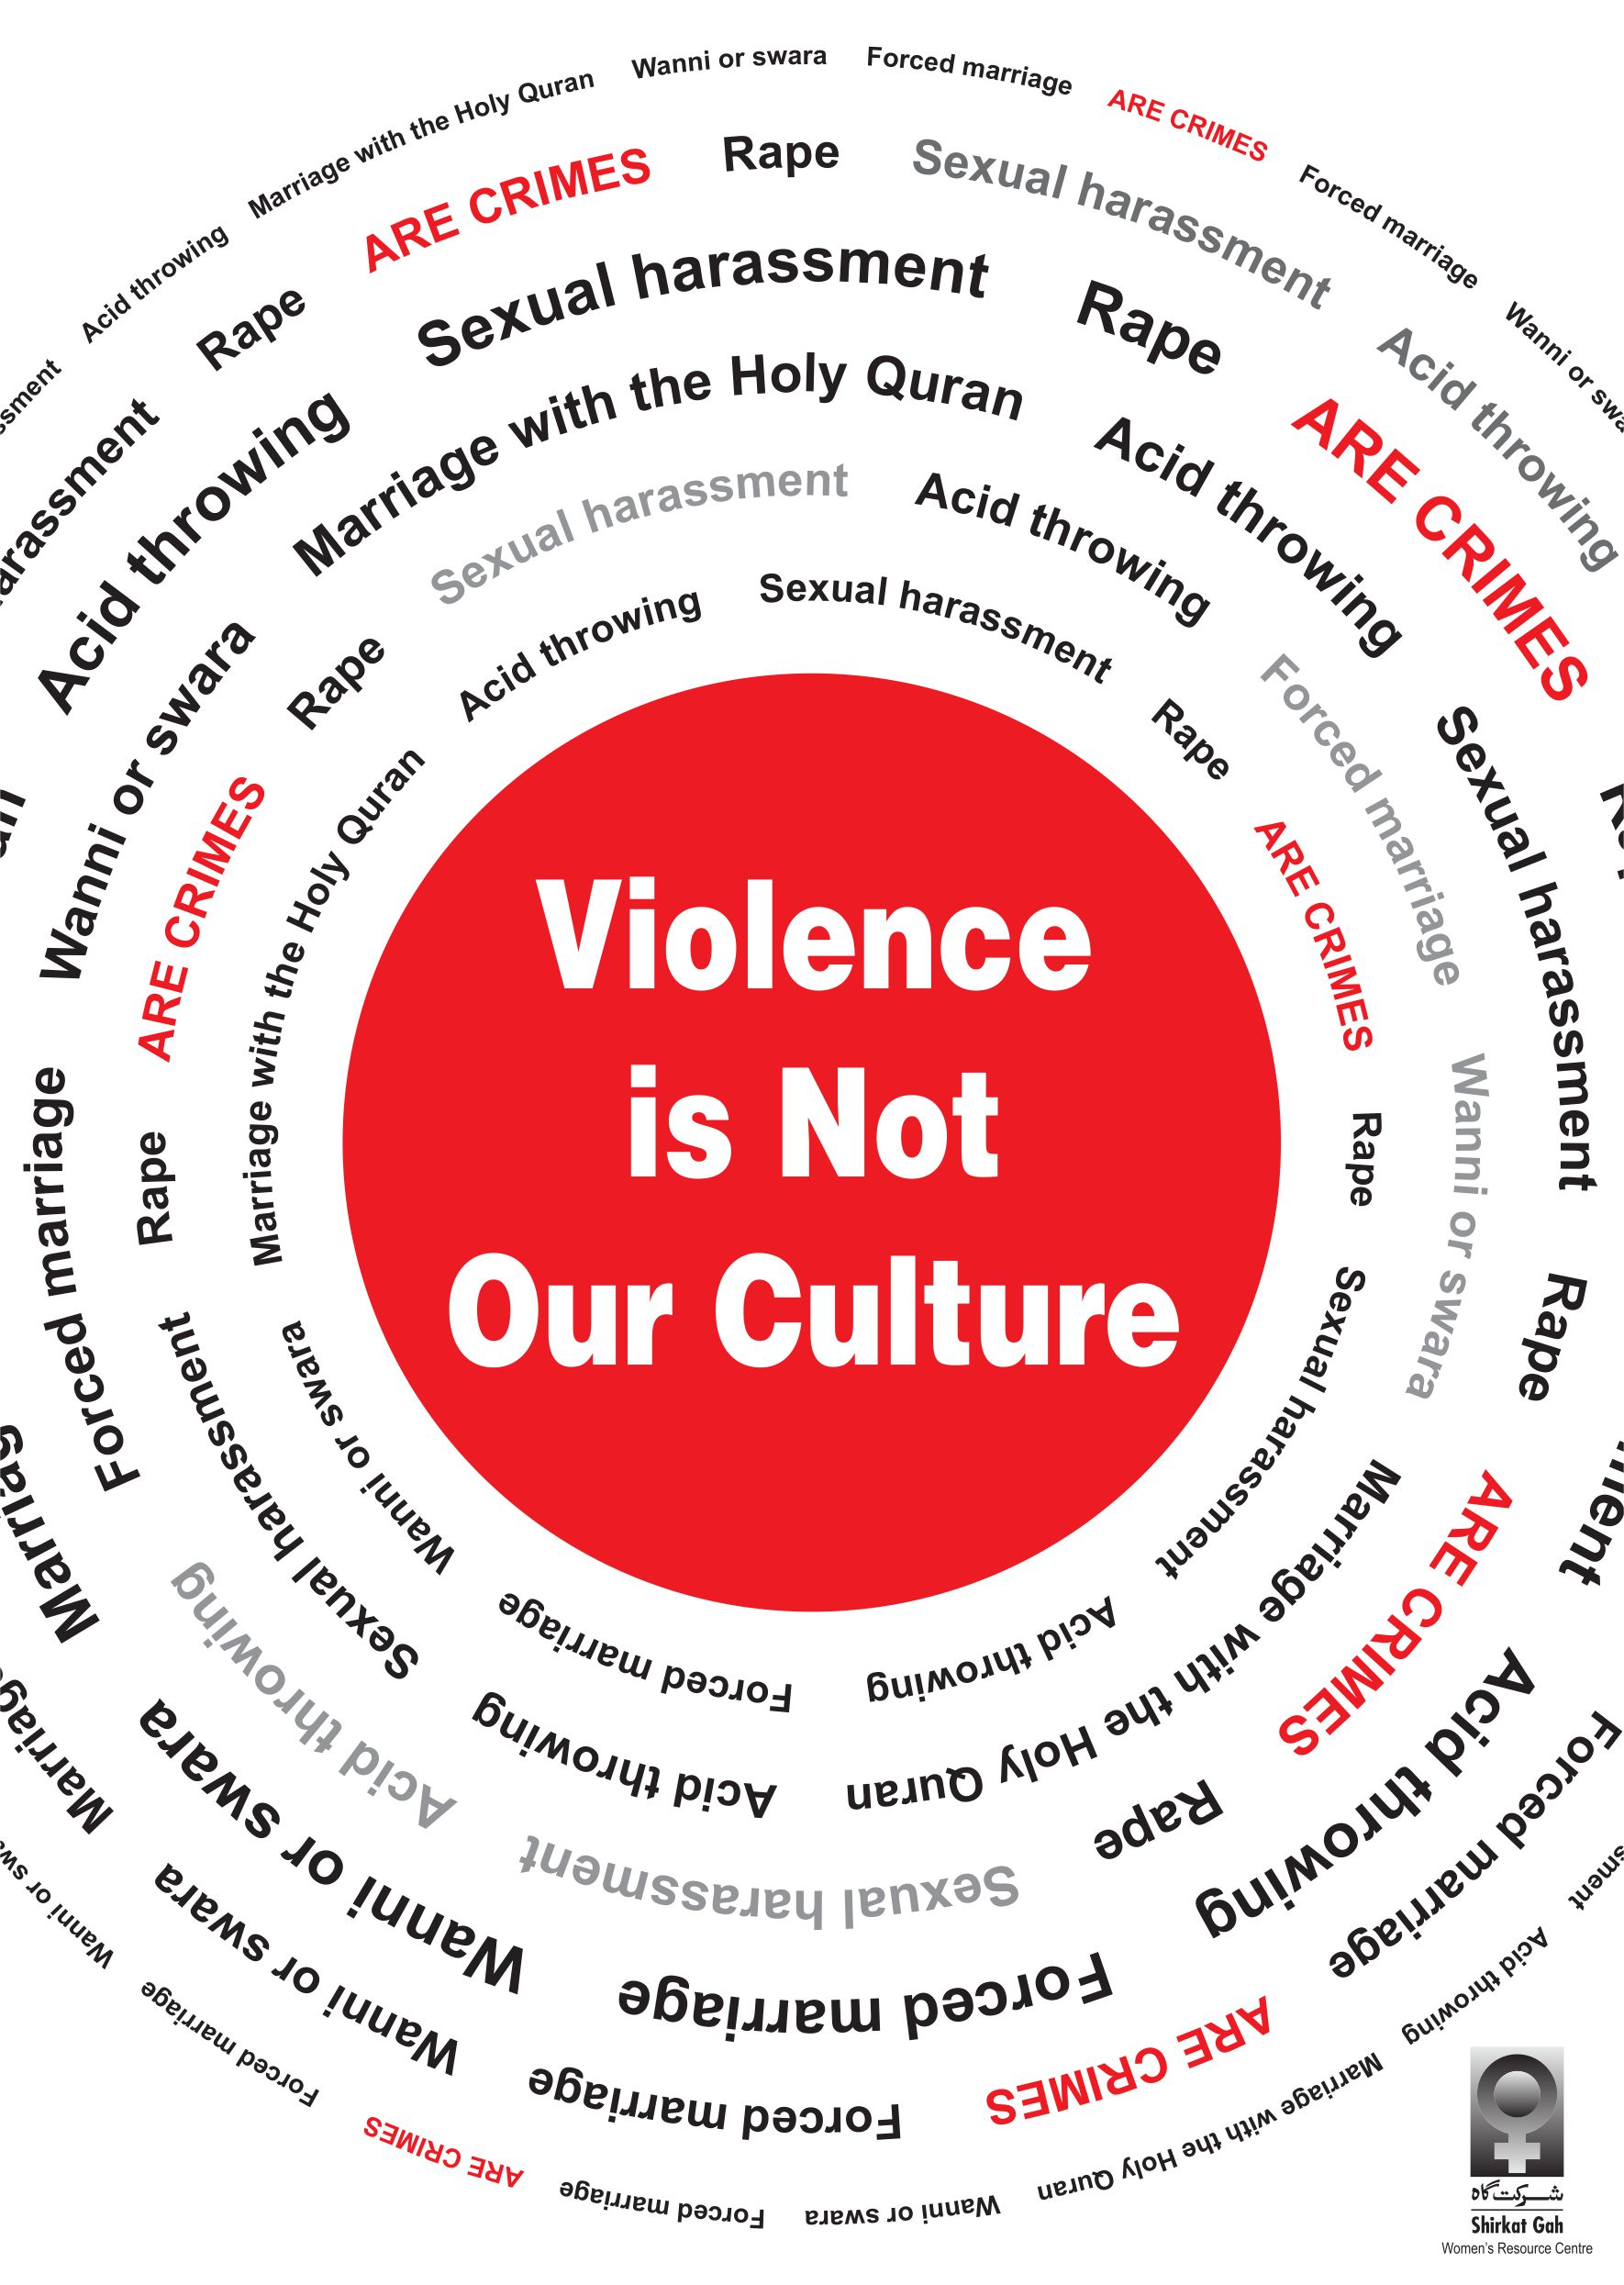 Violence is Not Our Culture